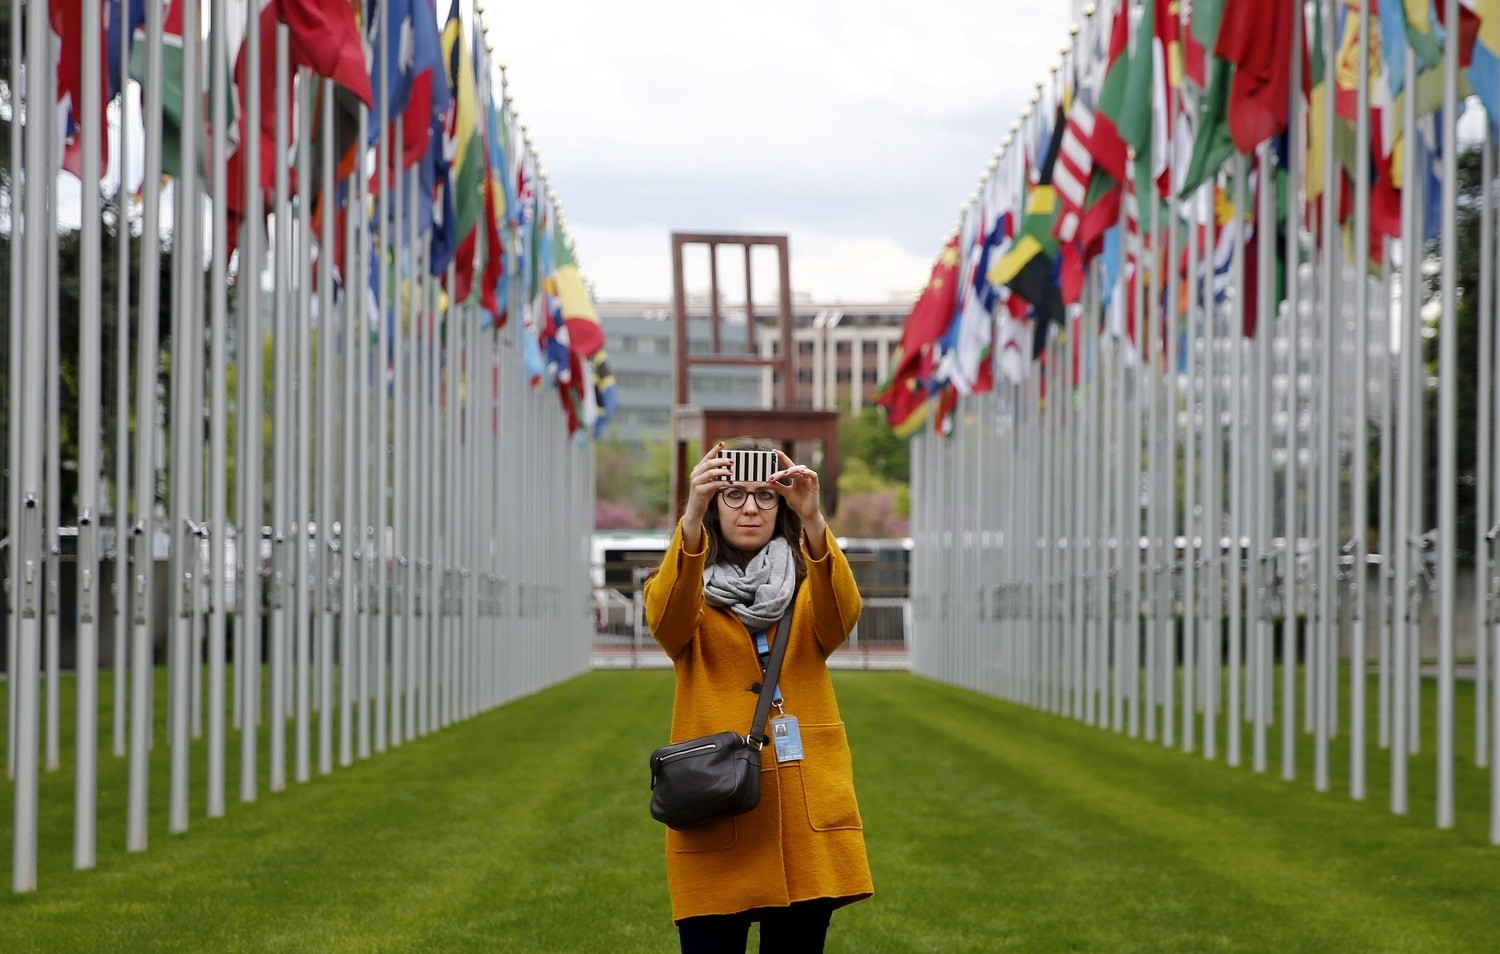 A staff takes a selfie in the flags alley at the European headquarters of the United Nations in Geneva, Switzerland, April 26, 2016.  REUTERS/Denis Balibouse - GF10000396206